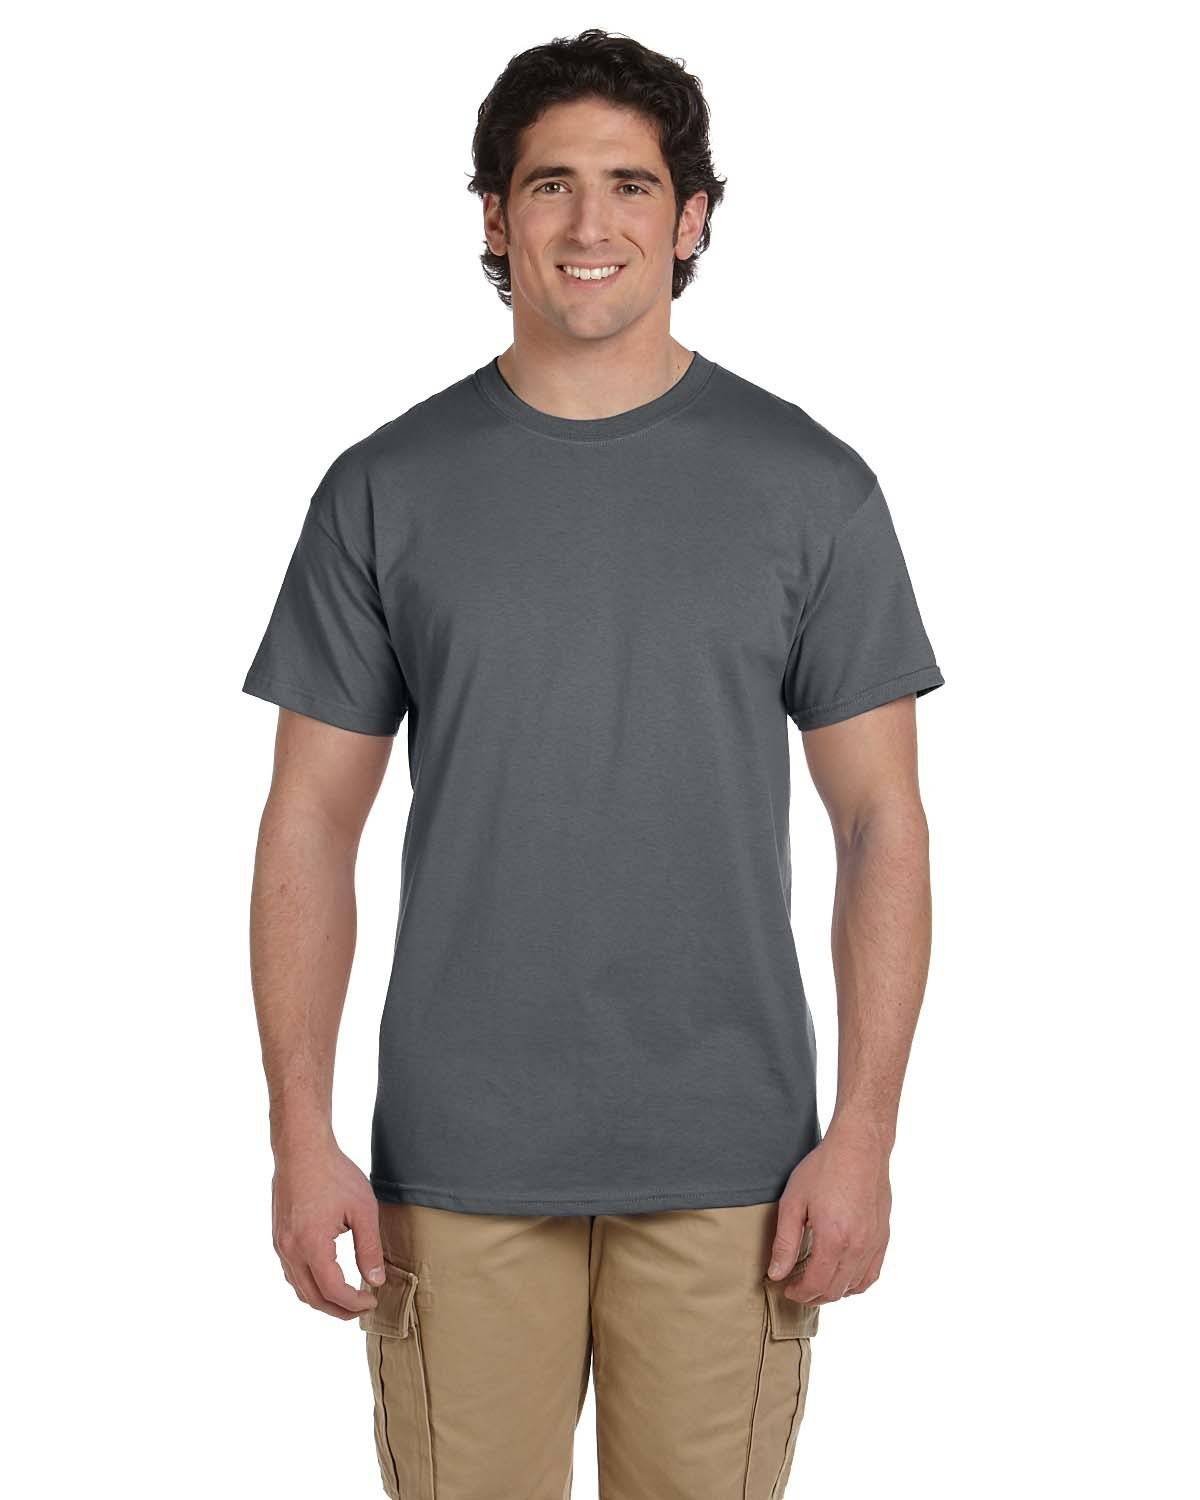 Fruit of the Loom Adult HD Cotton™ T-Shirt CHARCOAL GREY